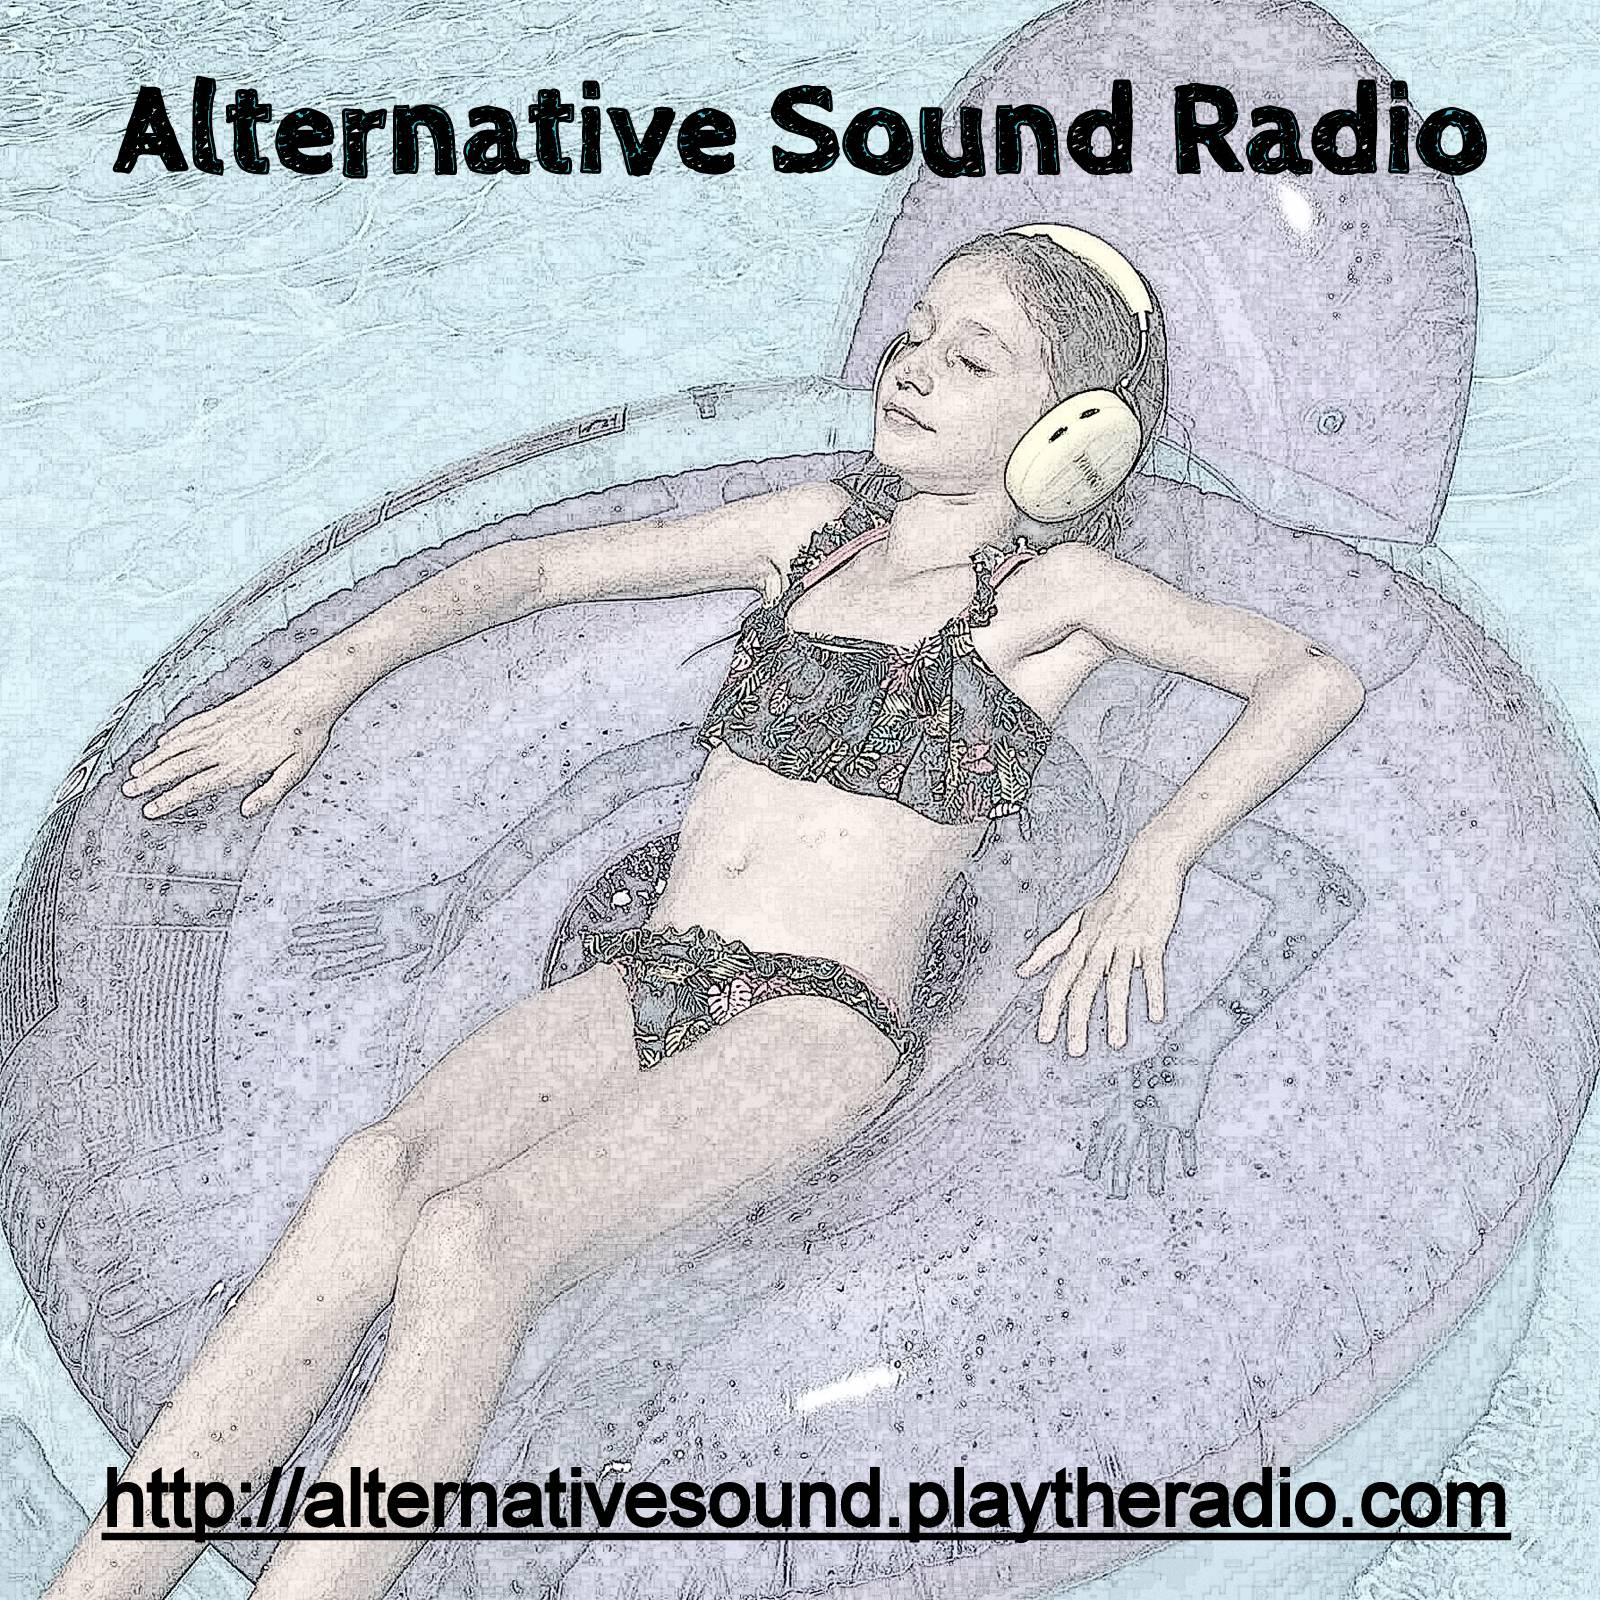 Alternative Sound